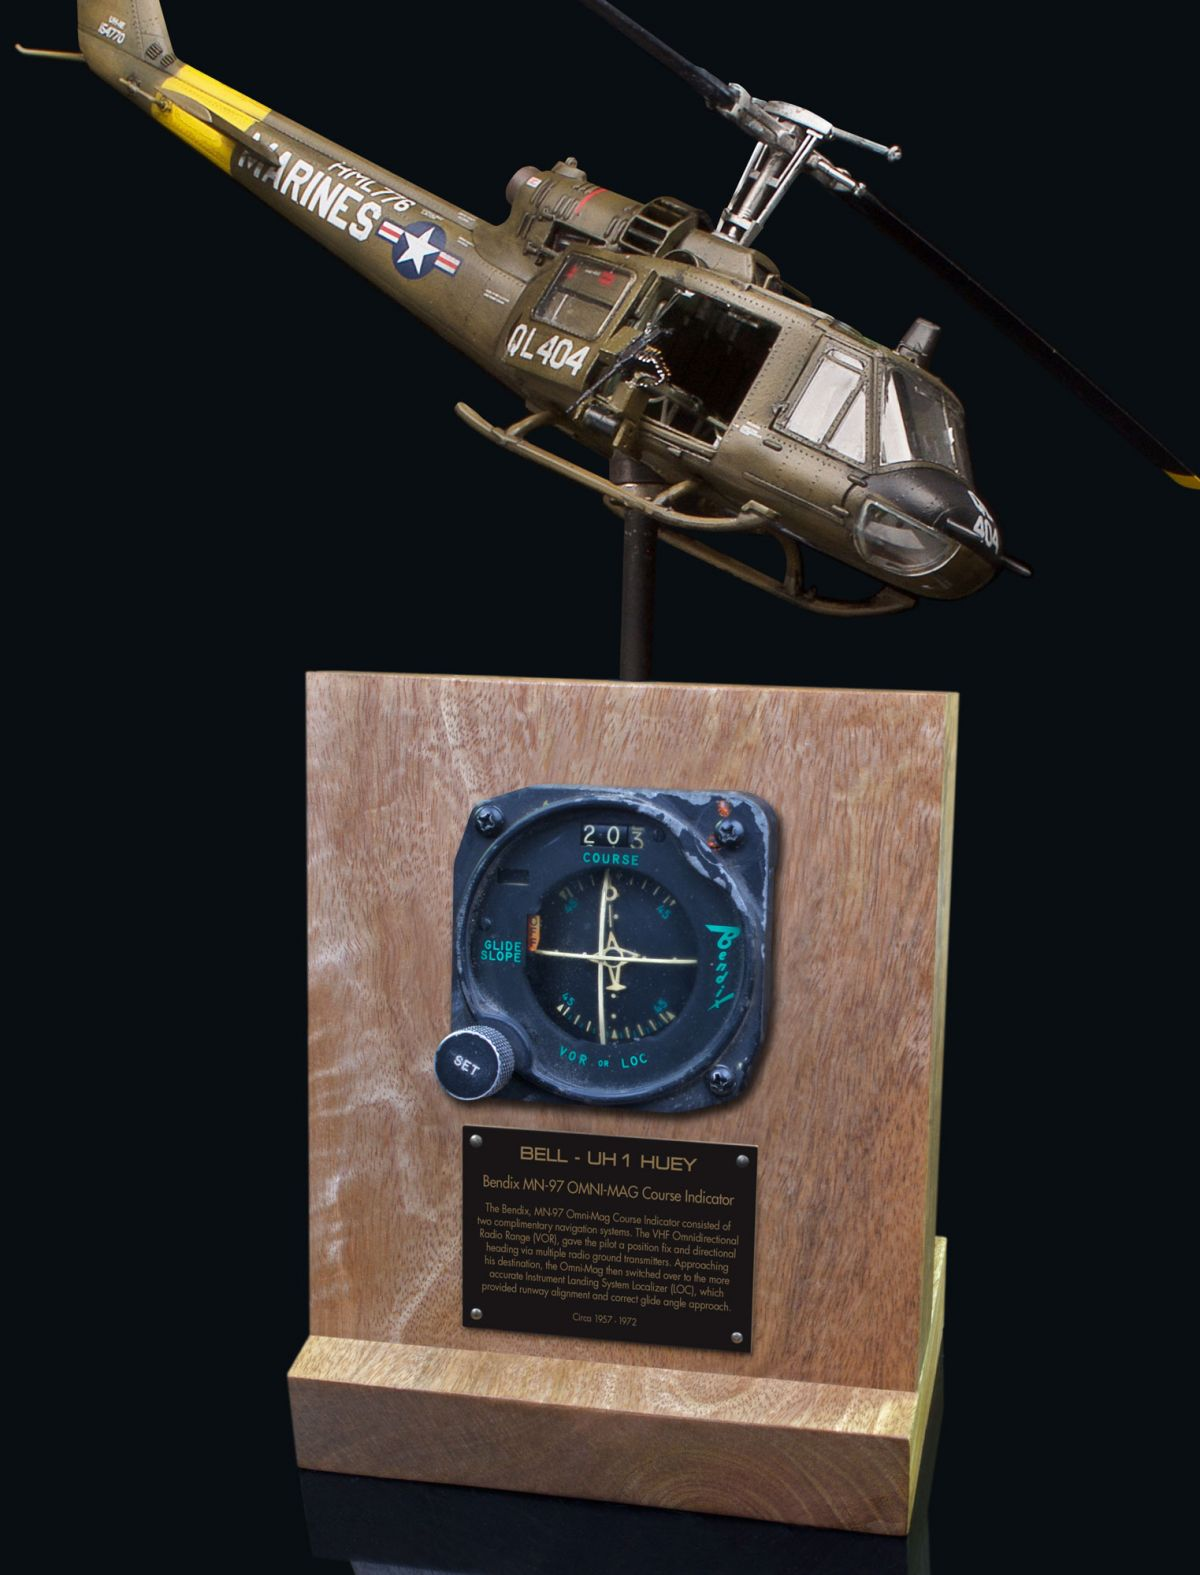 BELL HUEY UH-1 MN-97 OMNI-MAG COURSE INDICATOR